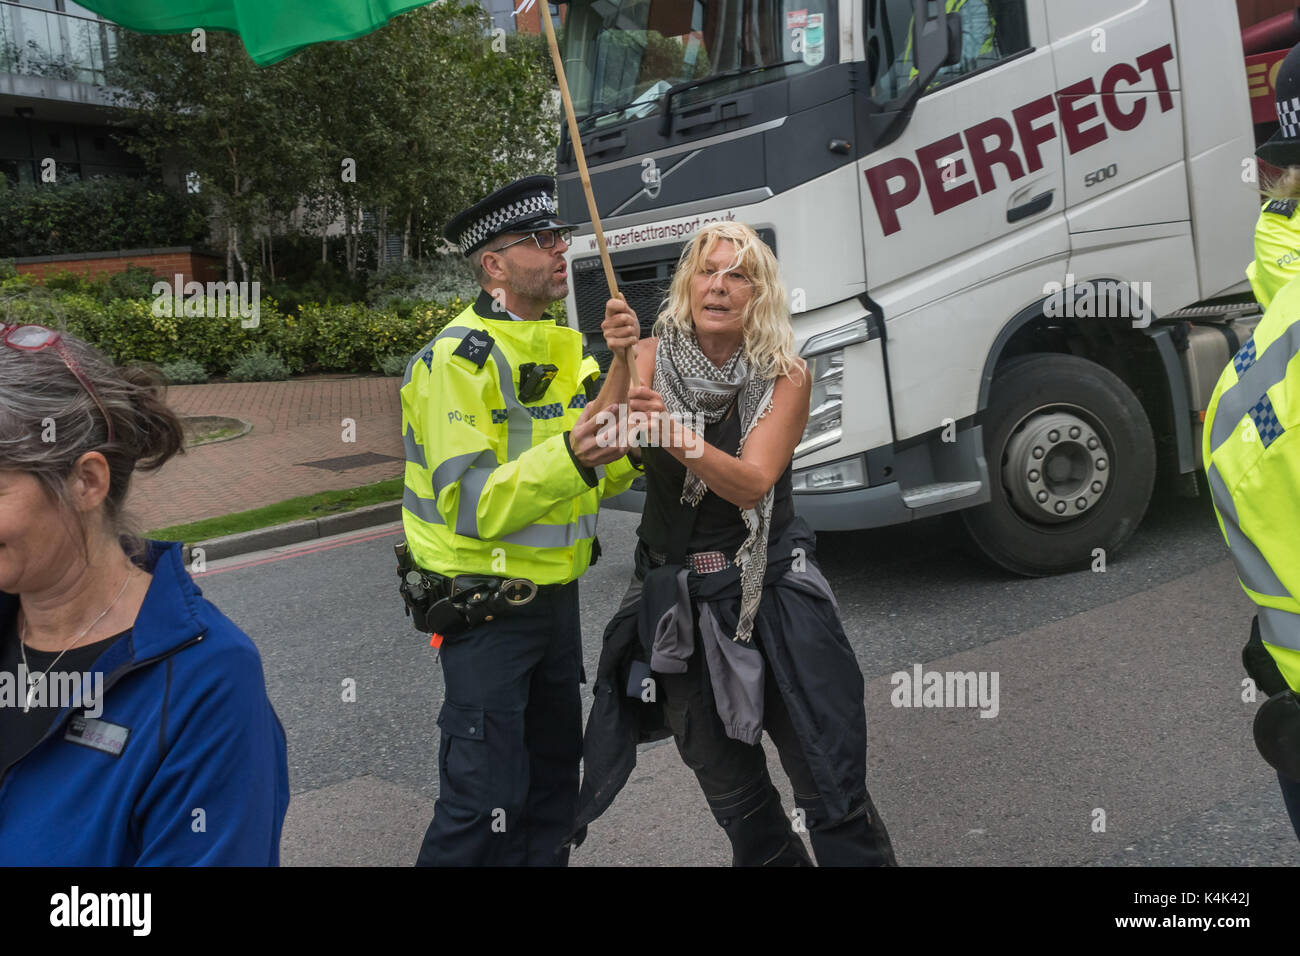 September 5, 2017 - London, UK - London, UK. 5th September 2017. A Police officer pushes a woman walking slowly Stock Photo